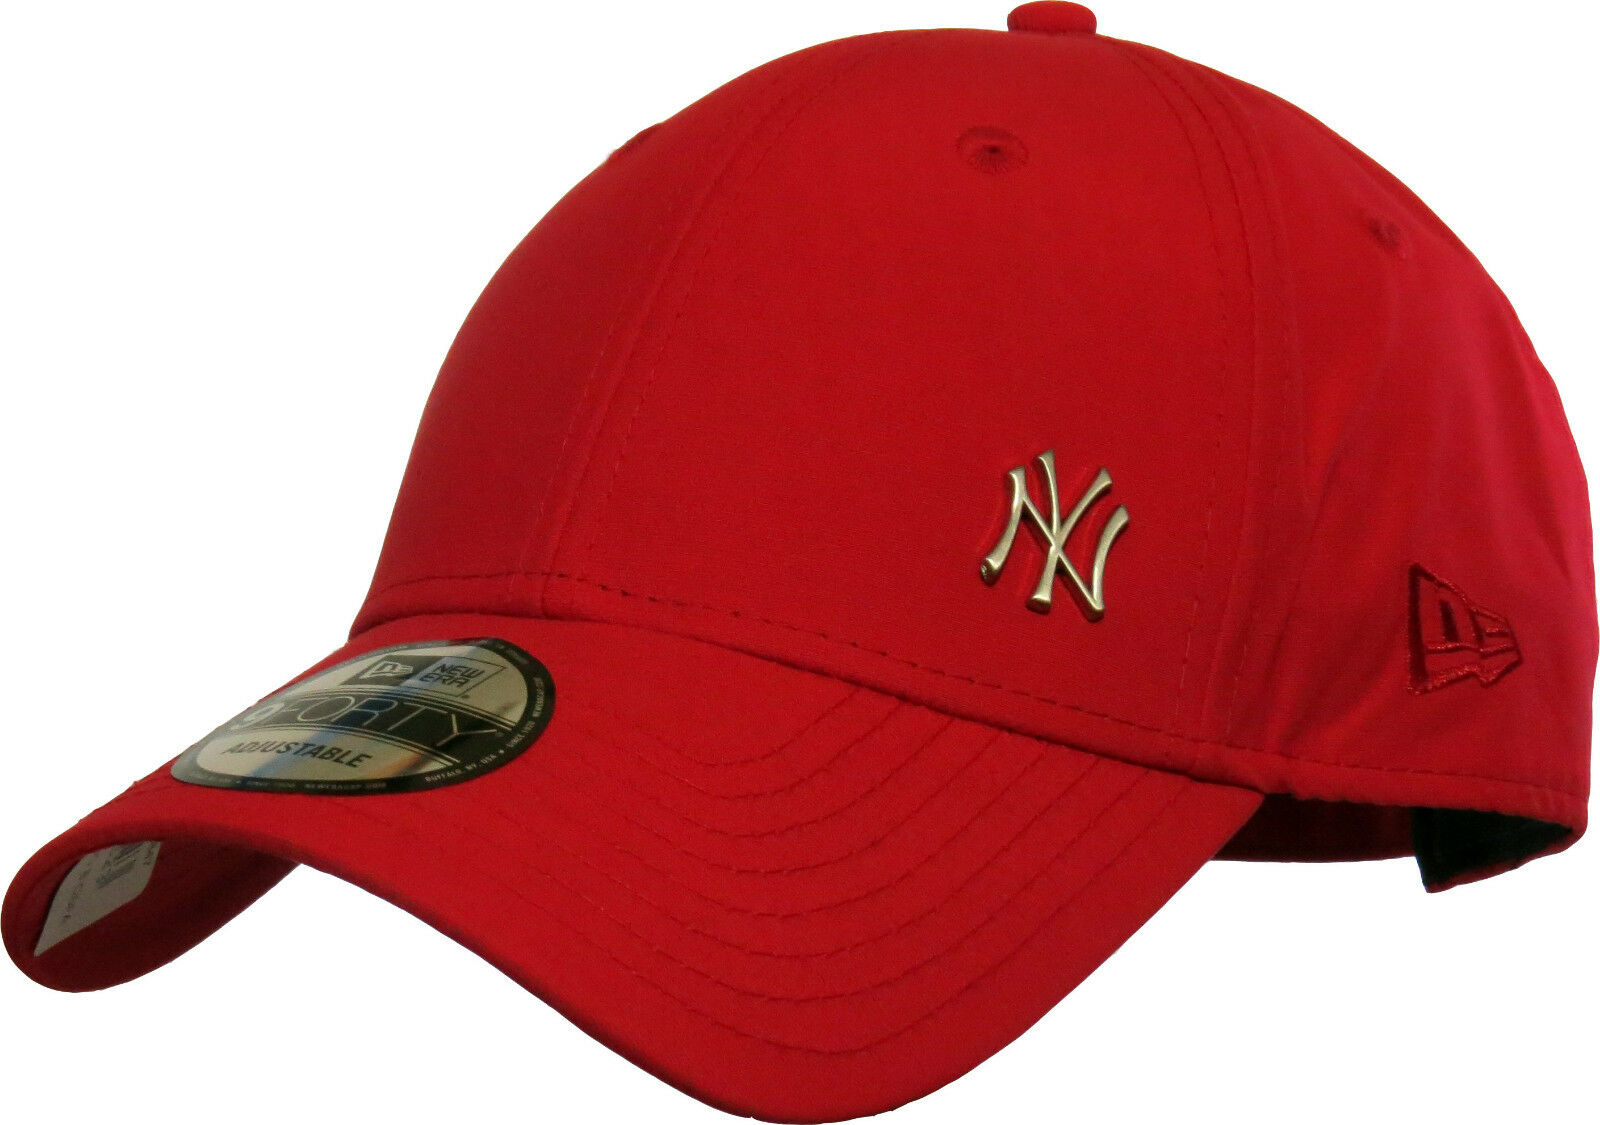 2ba4db2127319 Era MLB Flawless Logo 9forty Adjustable Cap NY Yankees Red One Size for sale  online | eBay